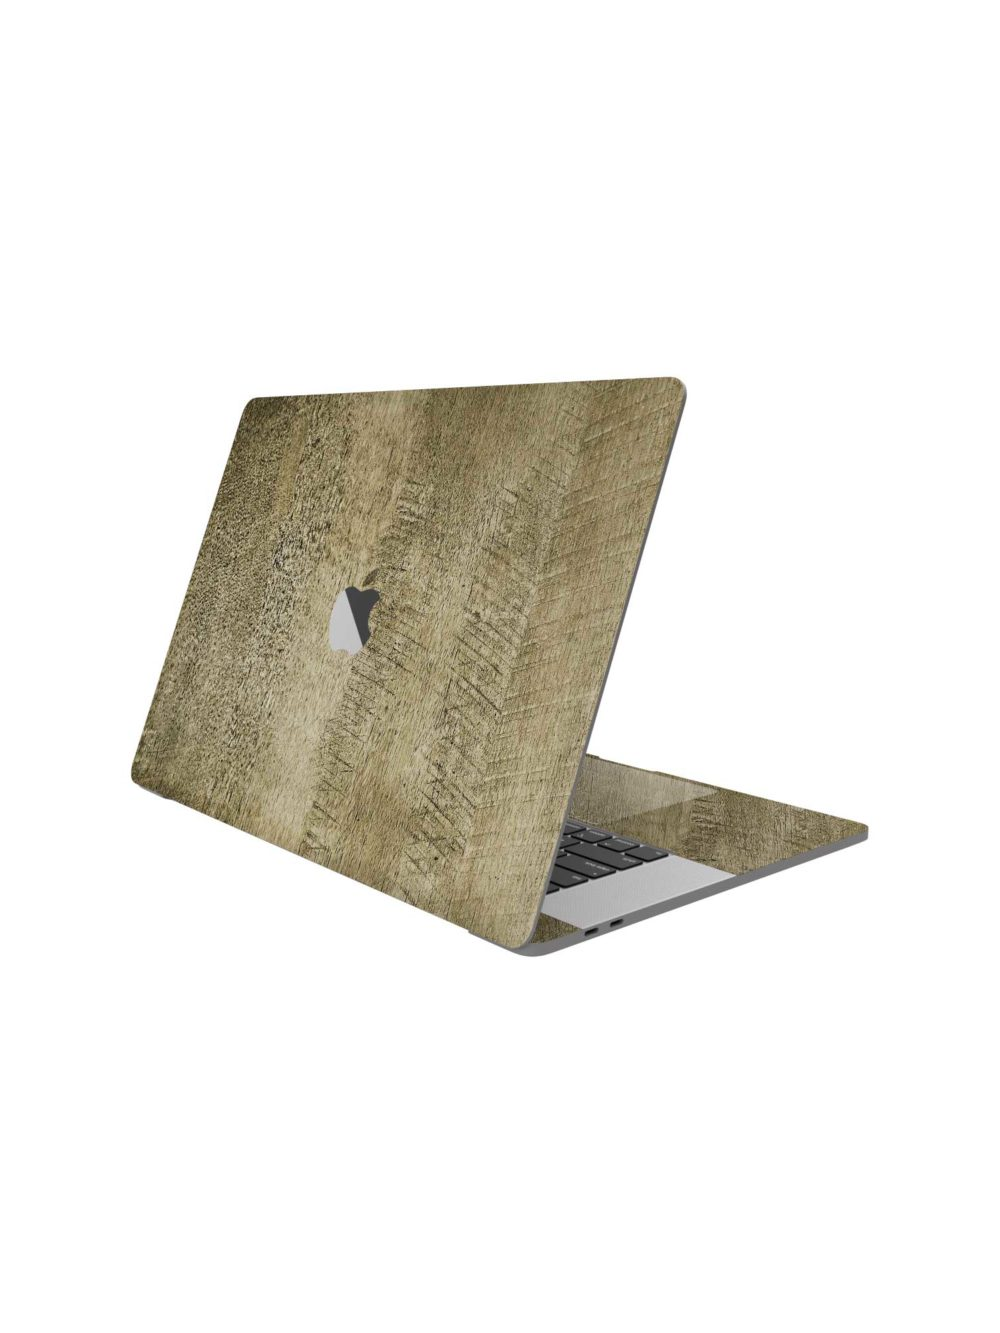 Oak Wood Skin for Apple Macbook Pro M1 2020